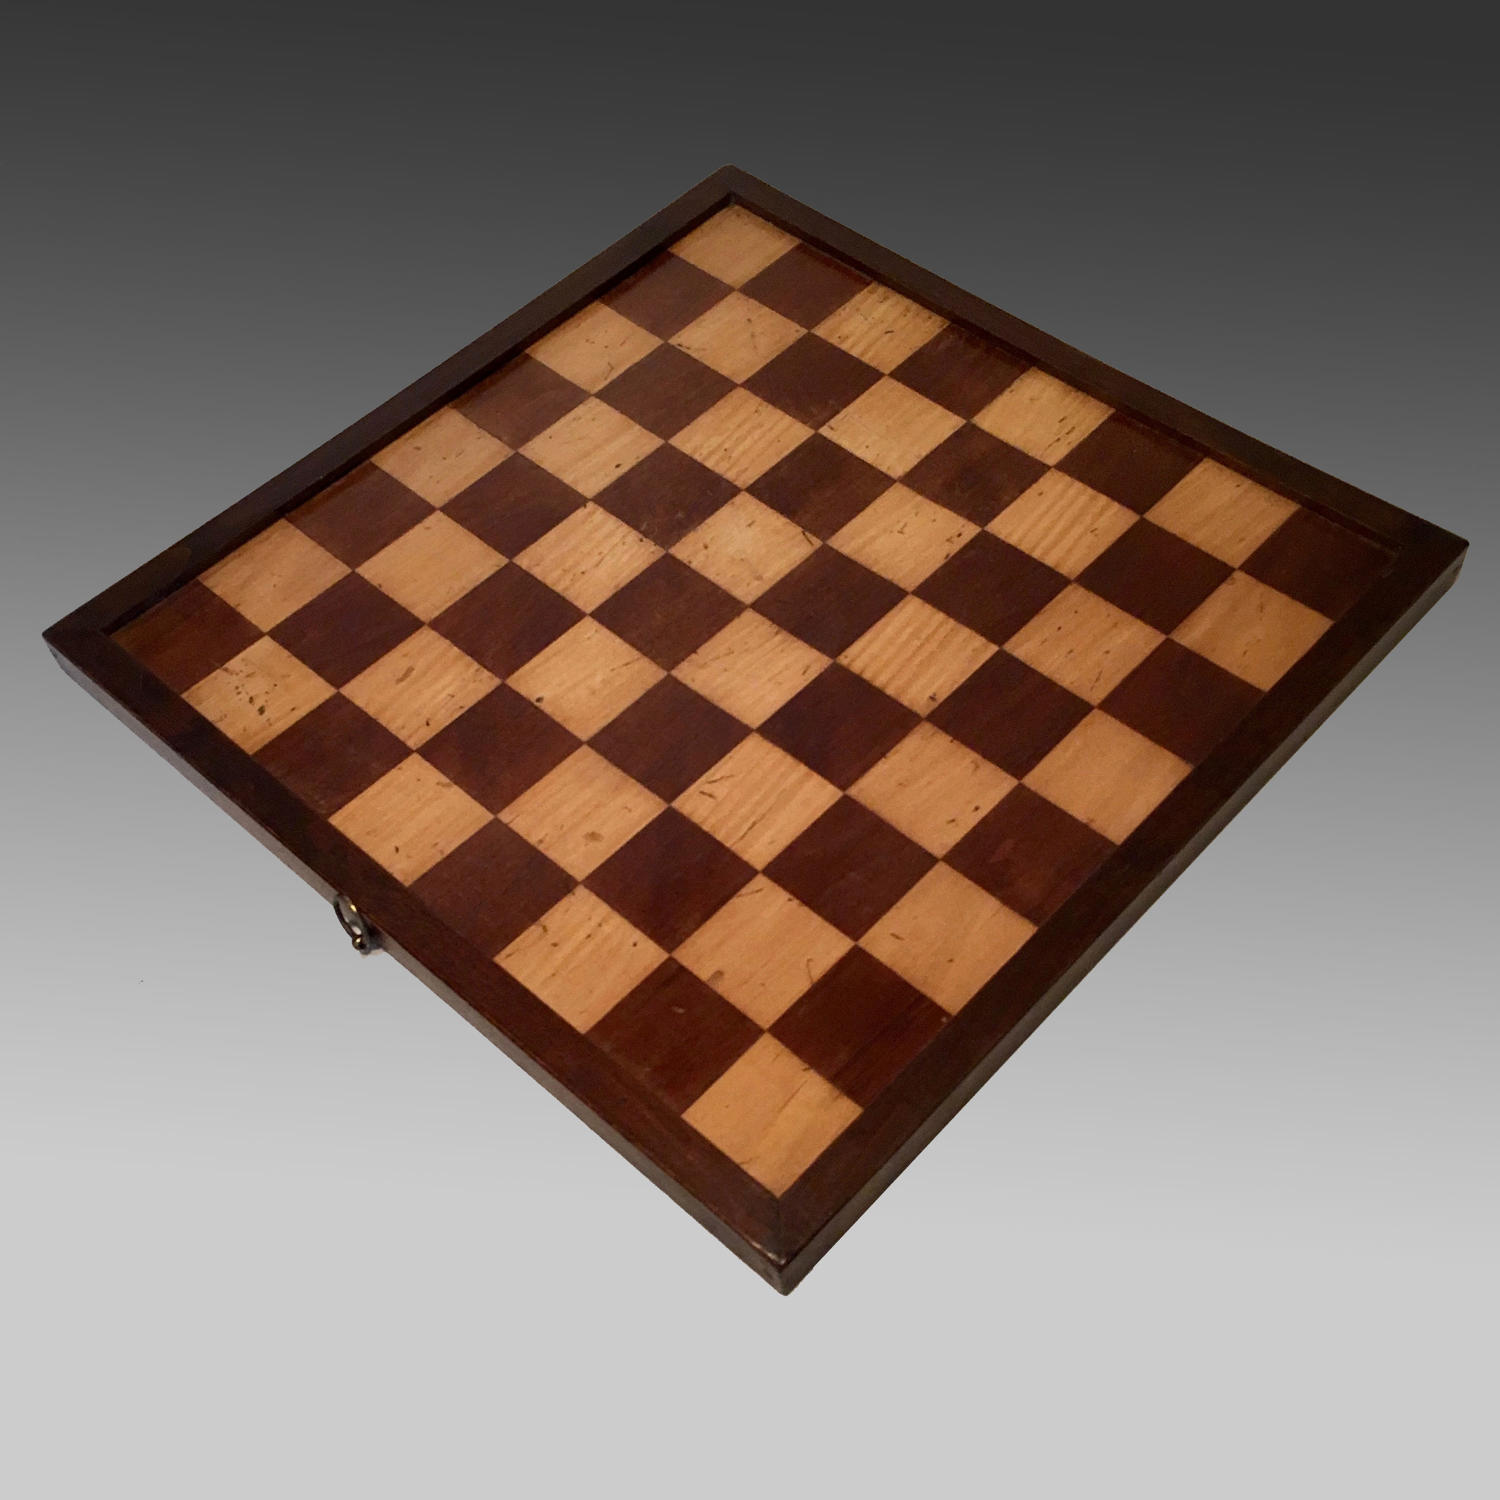 Late 19th century walnut framed games board